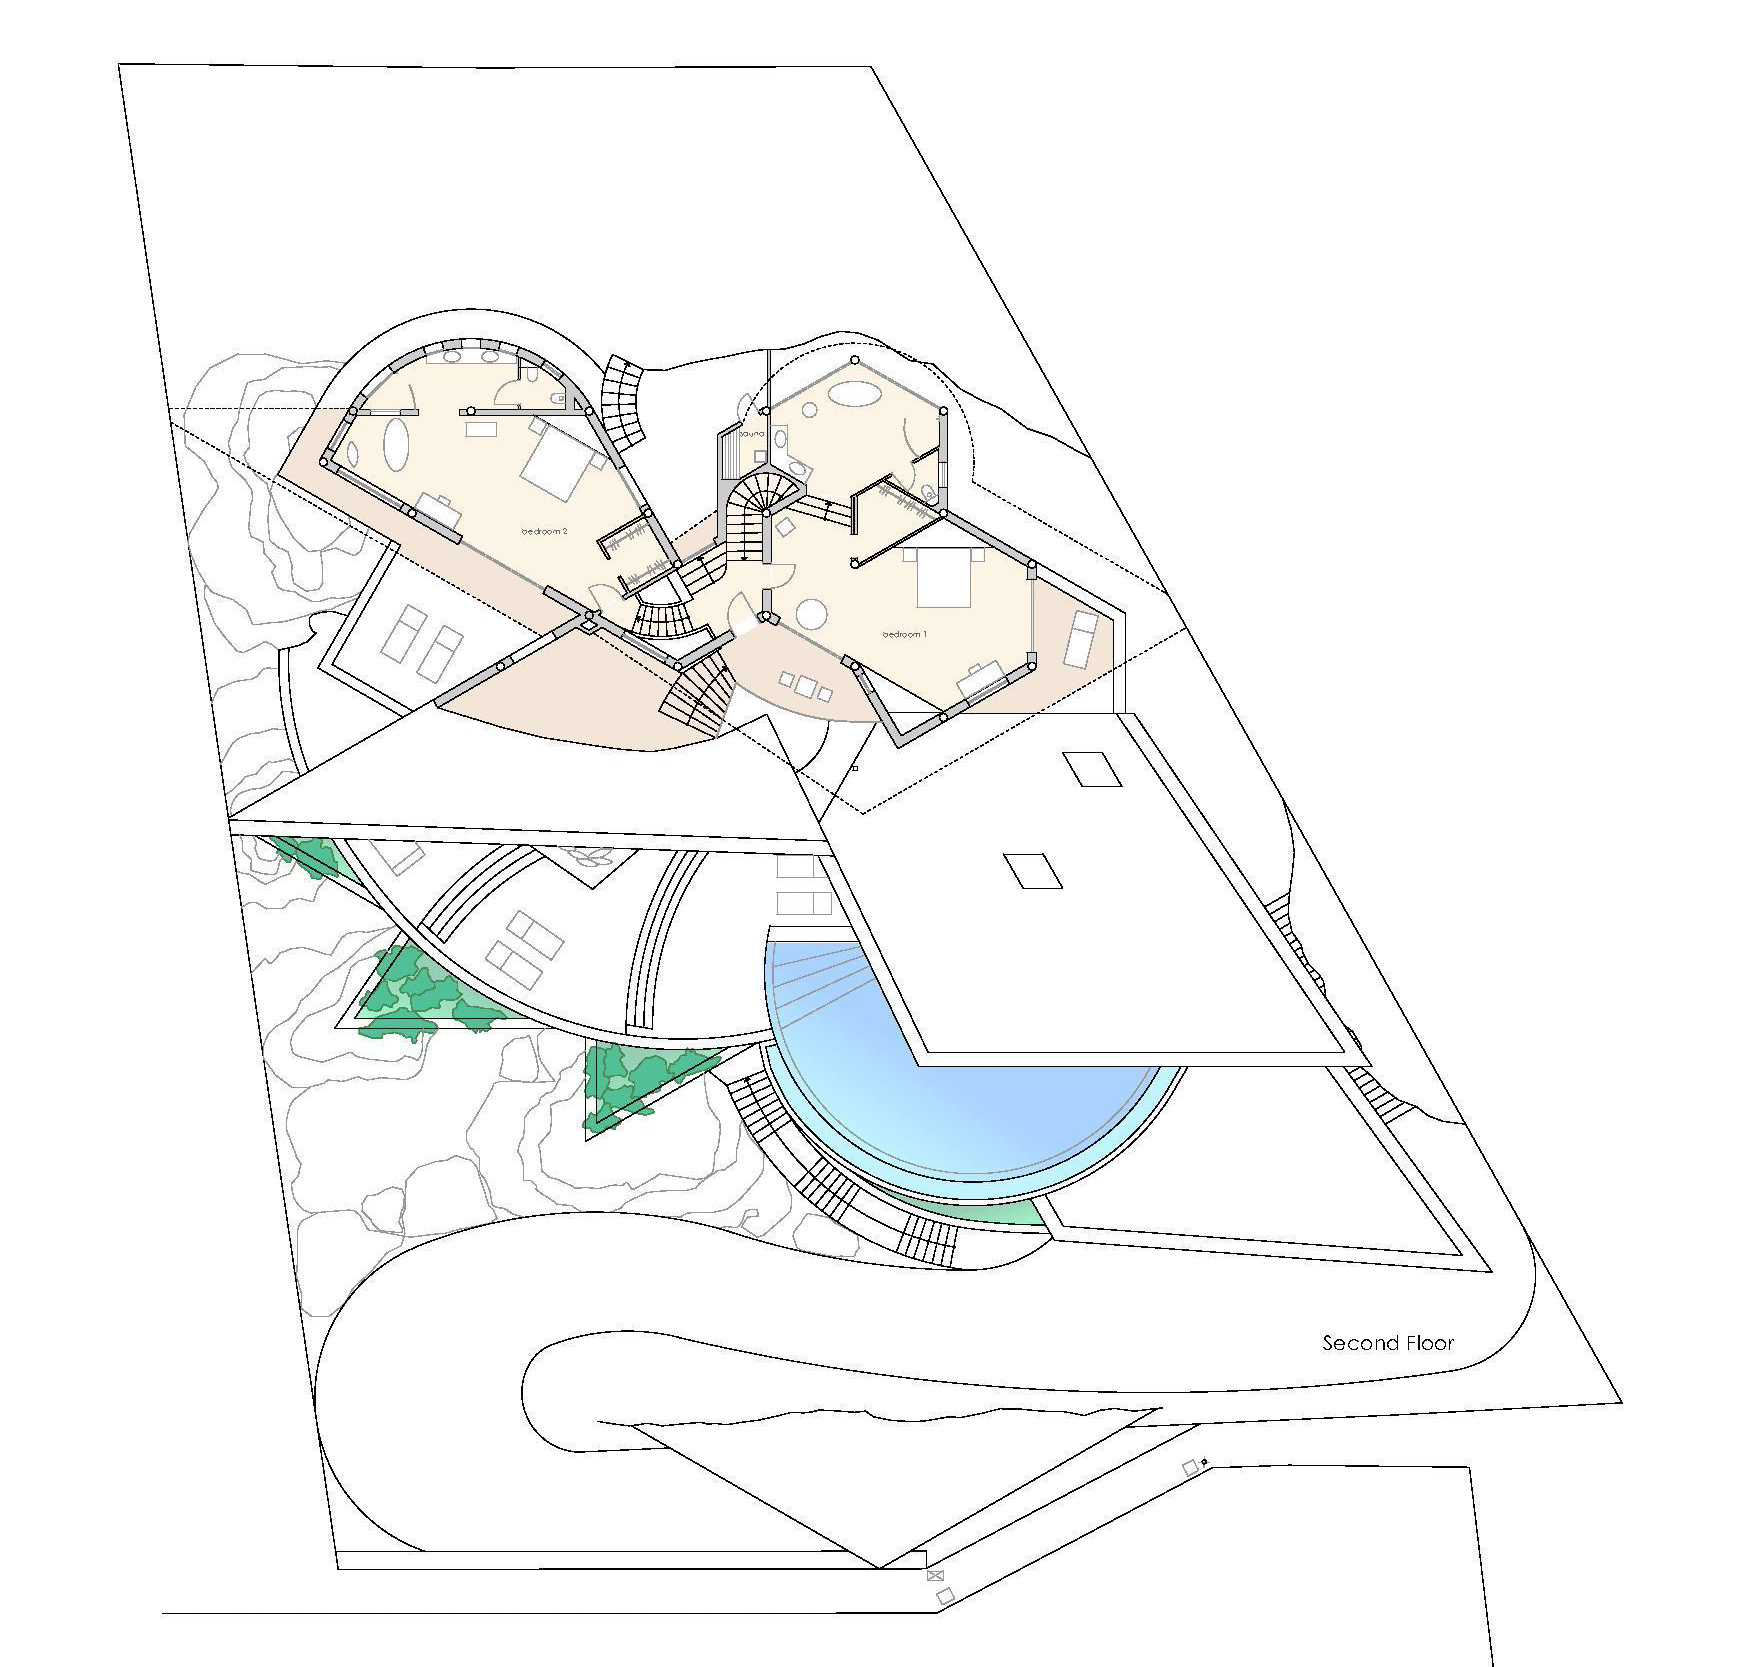 Second Floor Plan - Rockstar Villa - Cala Marmacen, Port d'Andratx, Mallorca, Balearic Islands, Spain